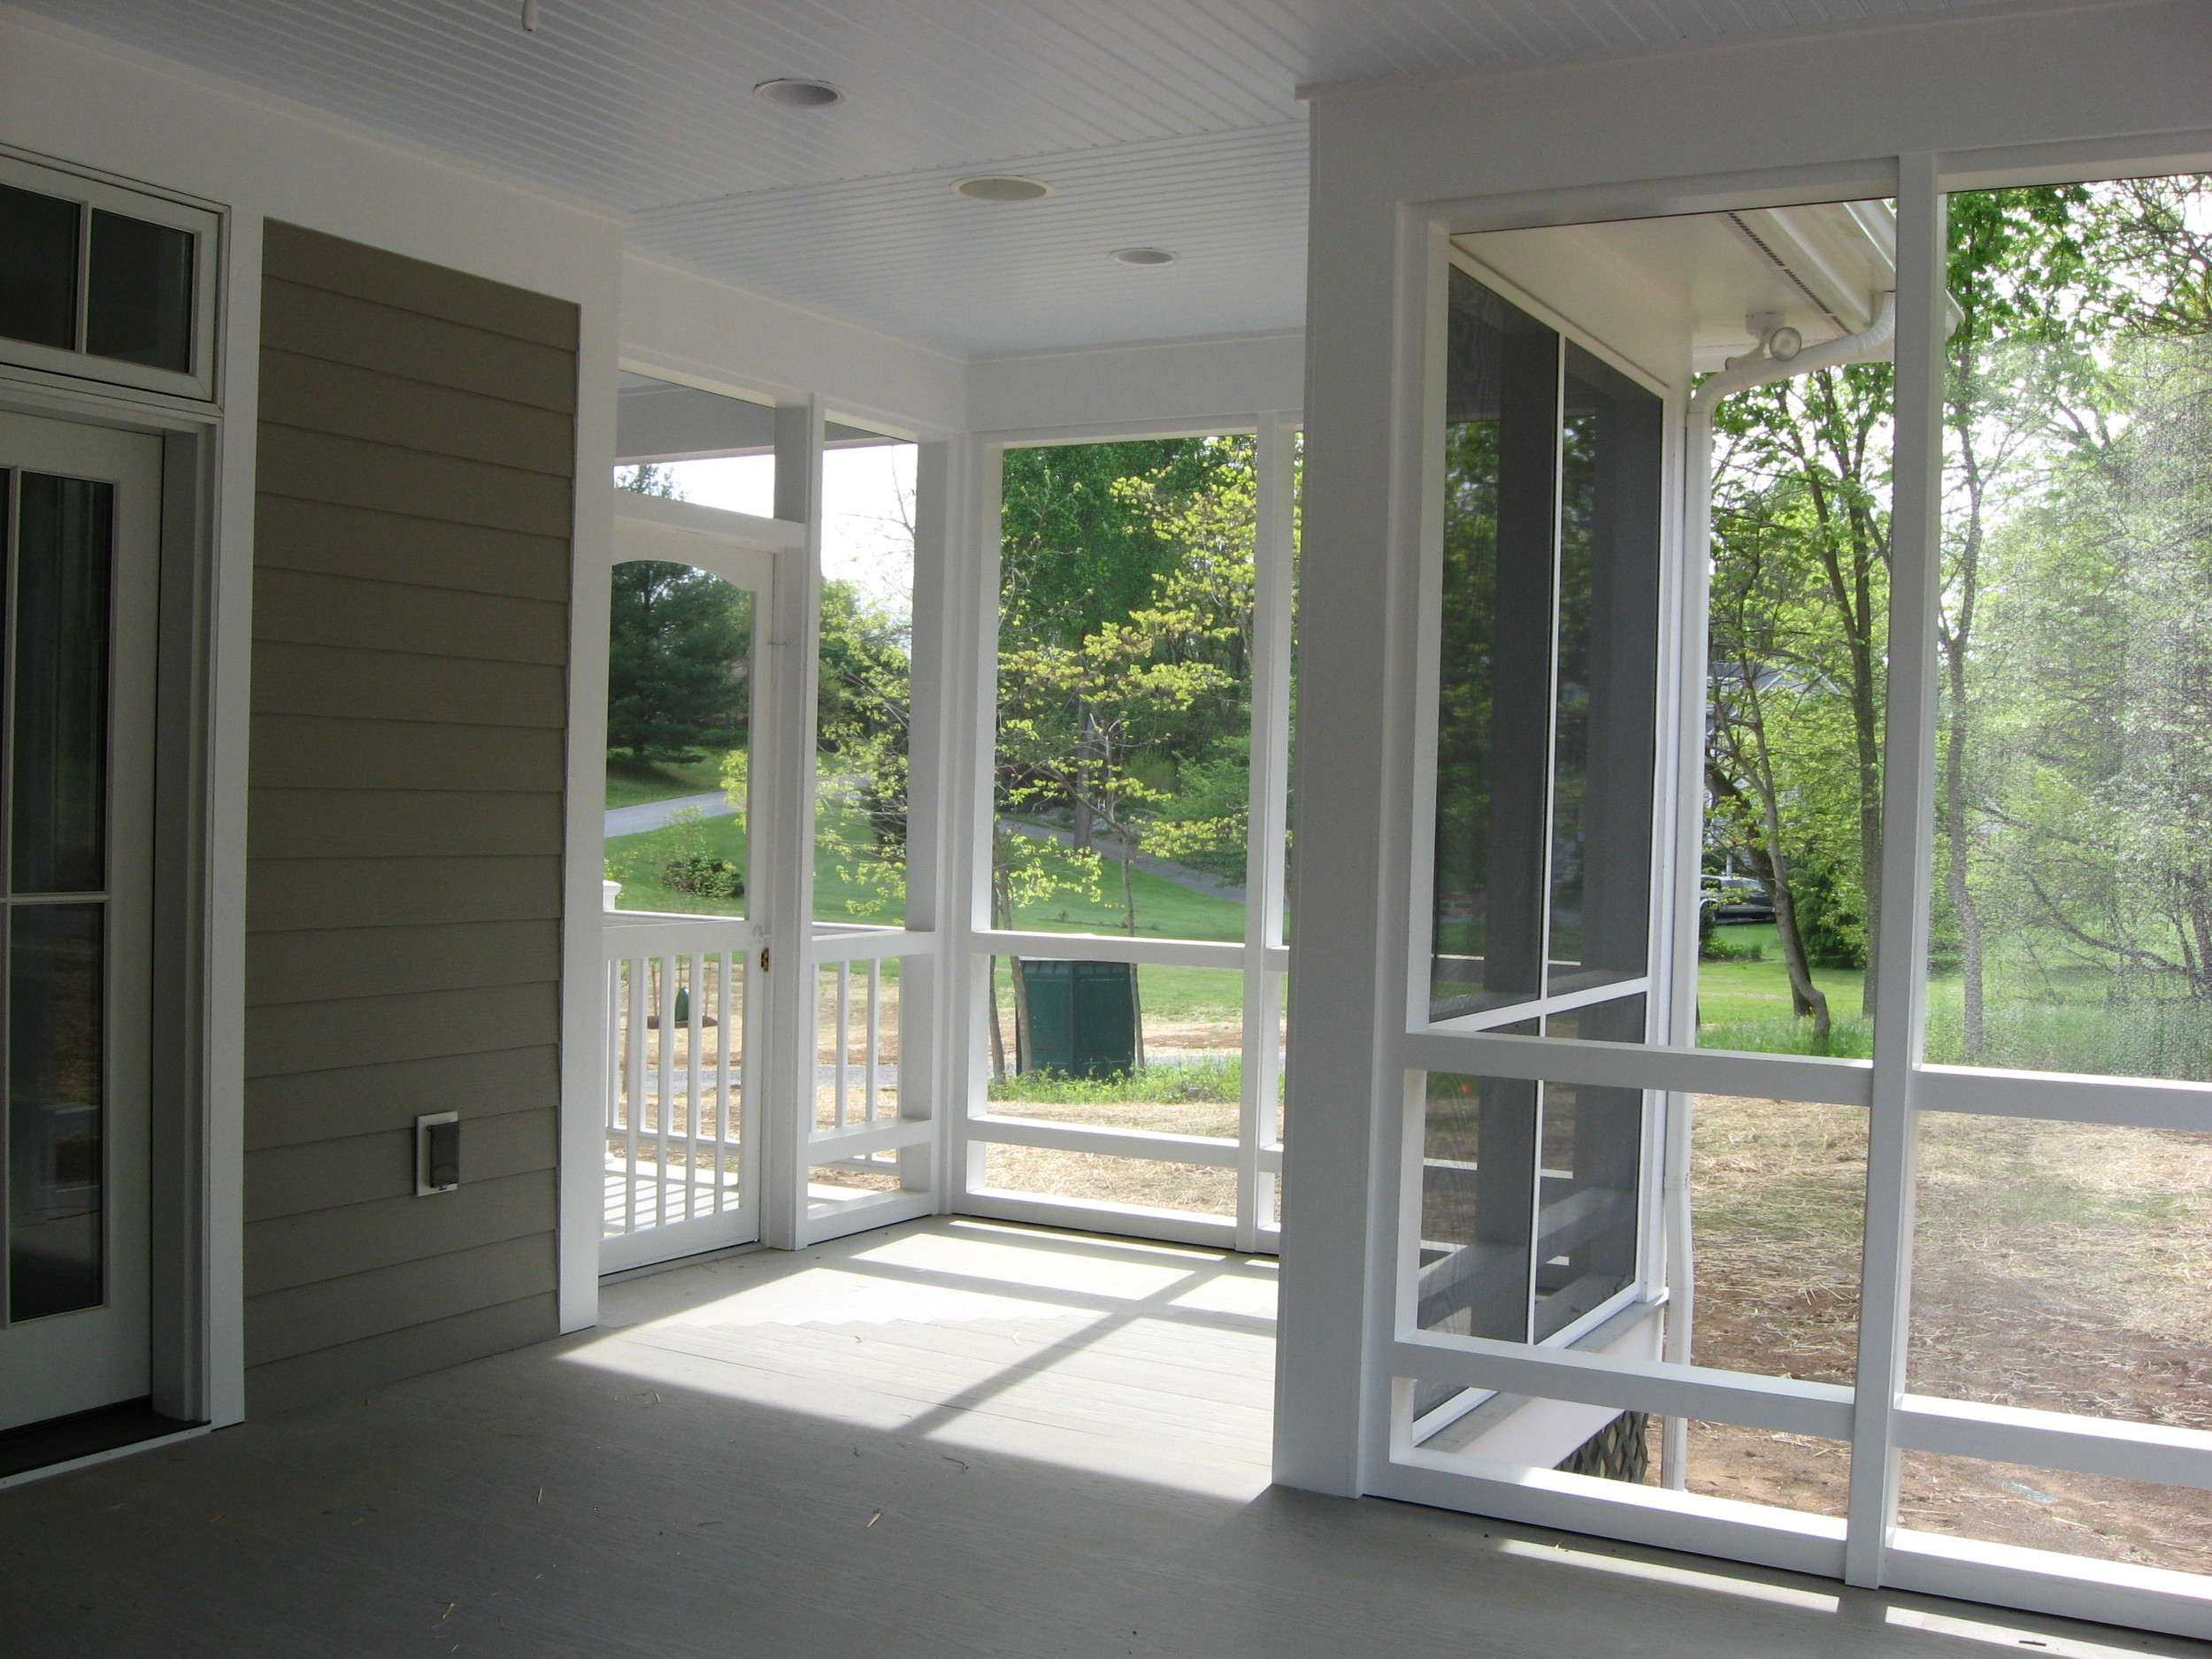 The rear porch is screened but the side and front porches are not.  Continuity of the porch flooring, porch depth, and repeated columns ensure a smooth transition from one space to the other.